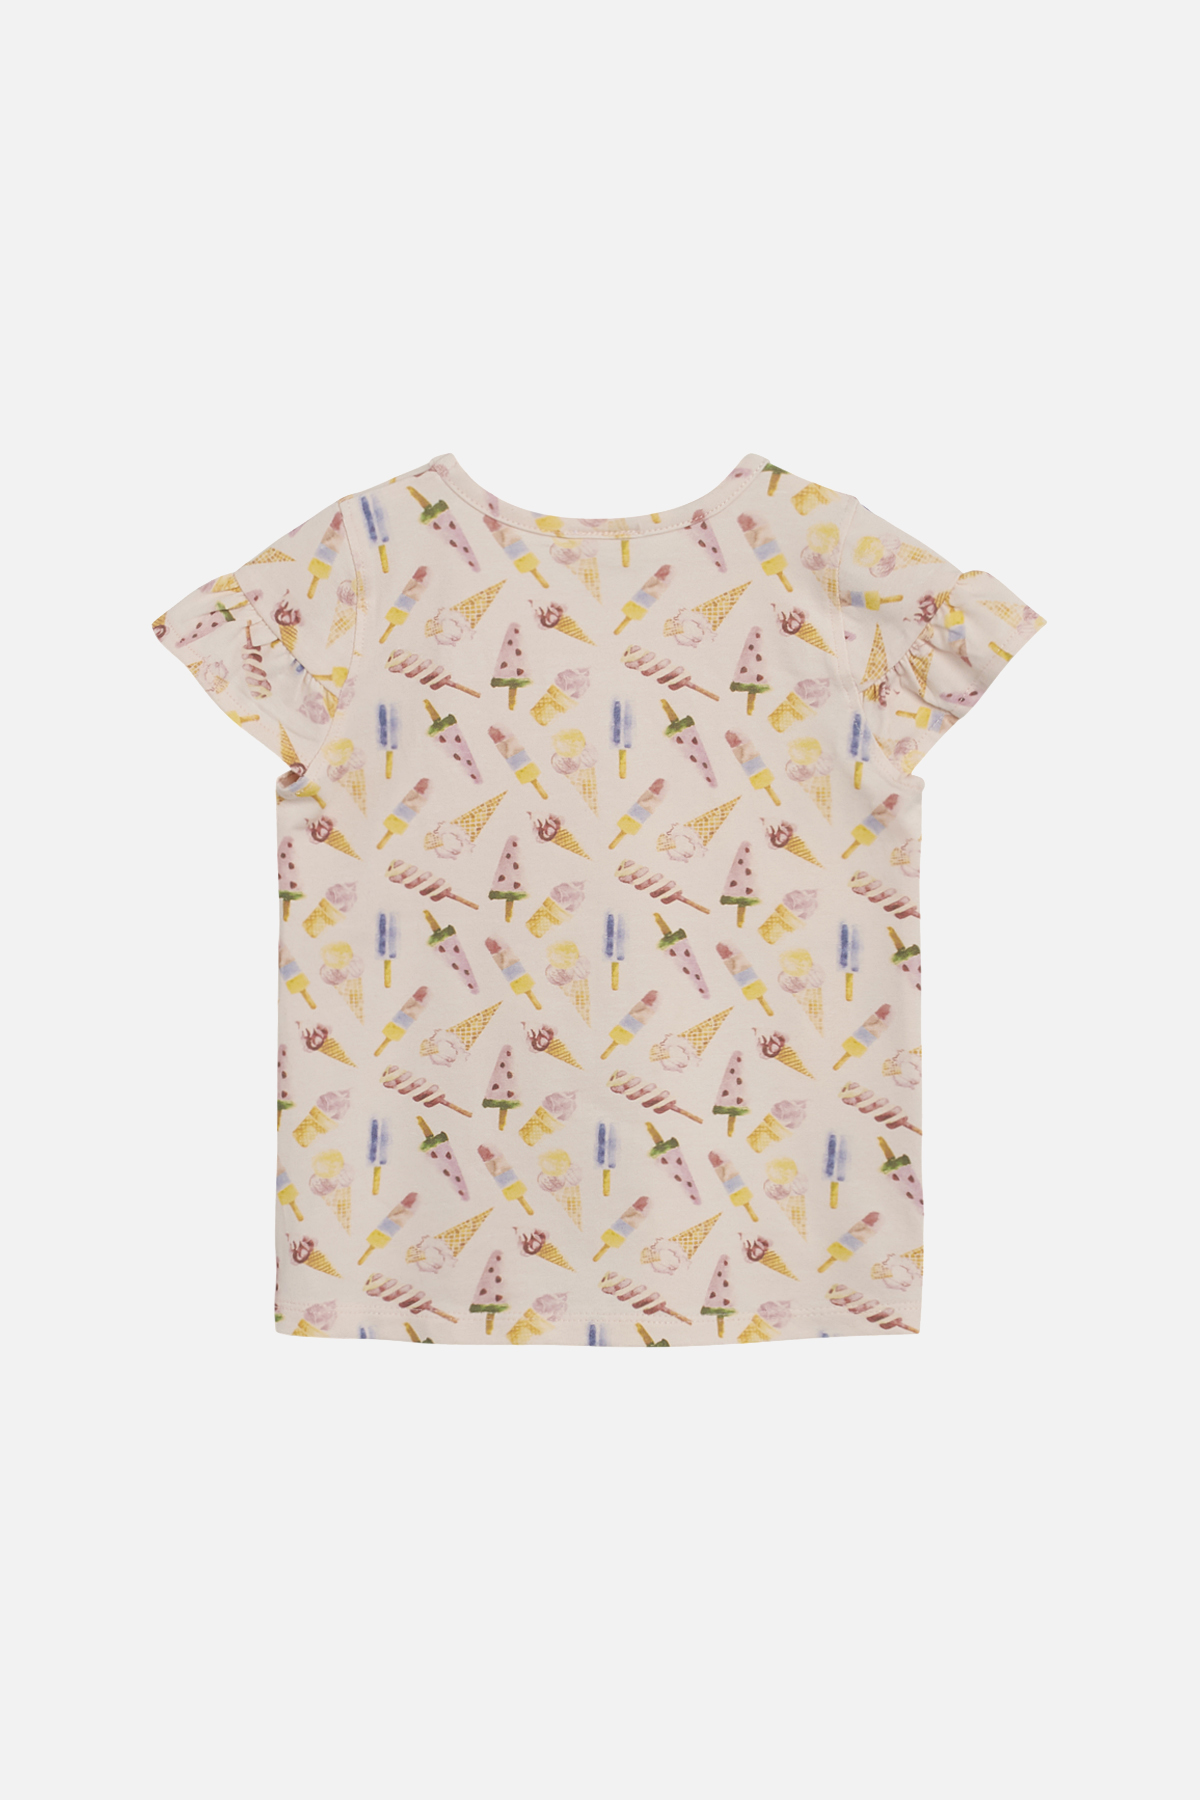 Hust & Claire, Agines T-shirt, Skin Chalk, 98